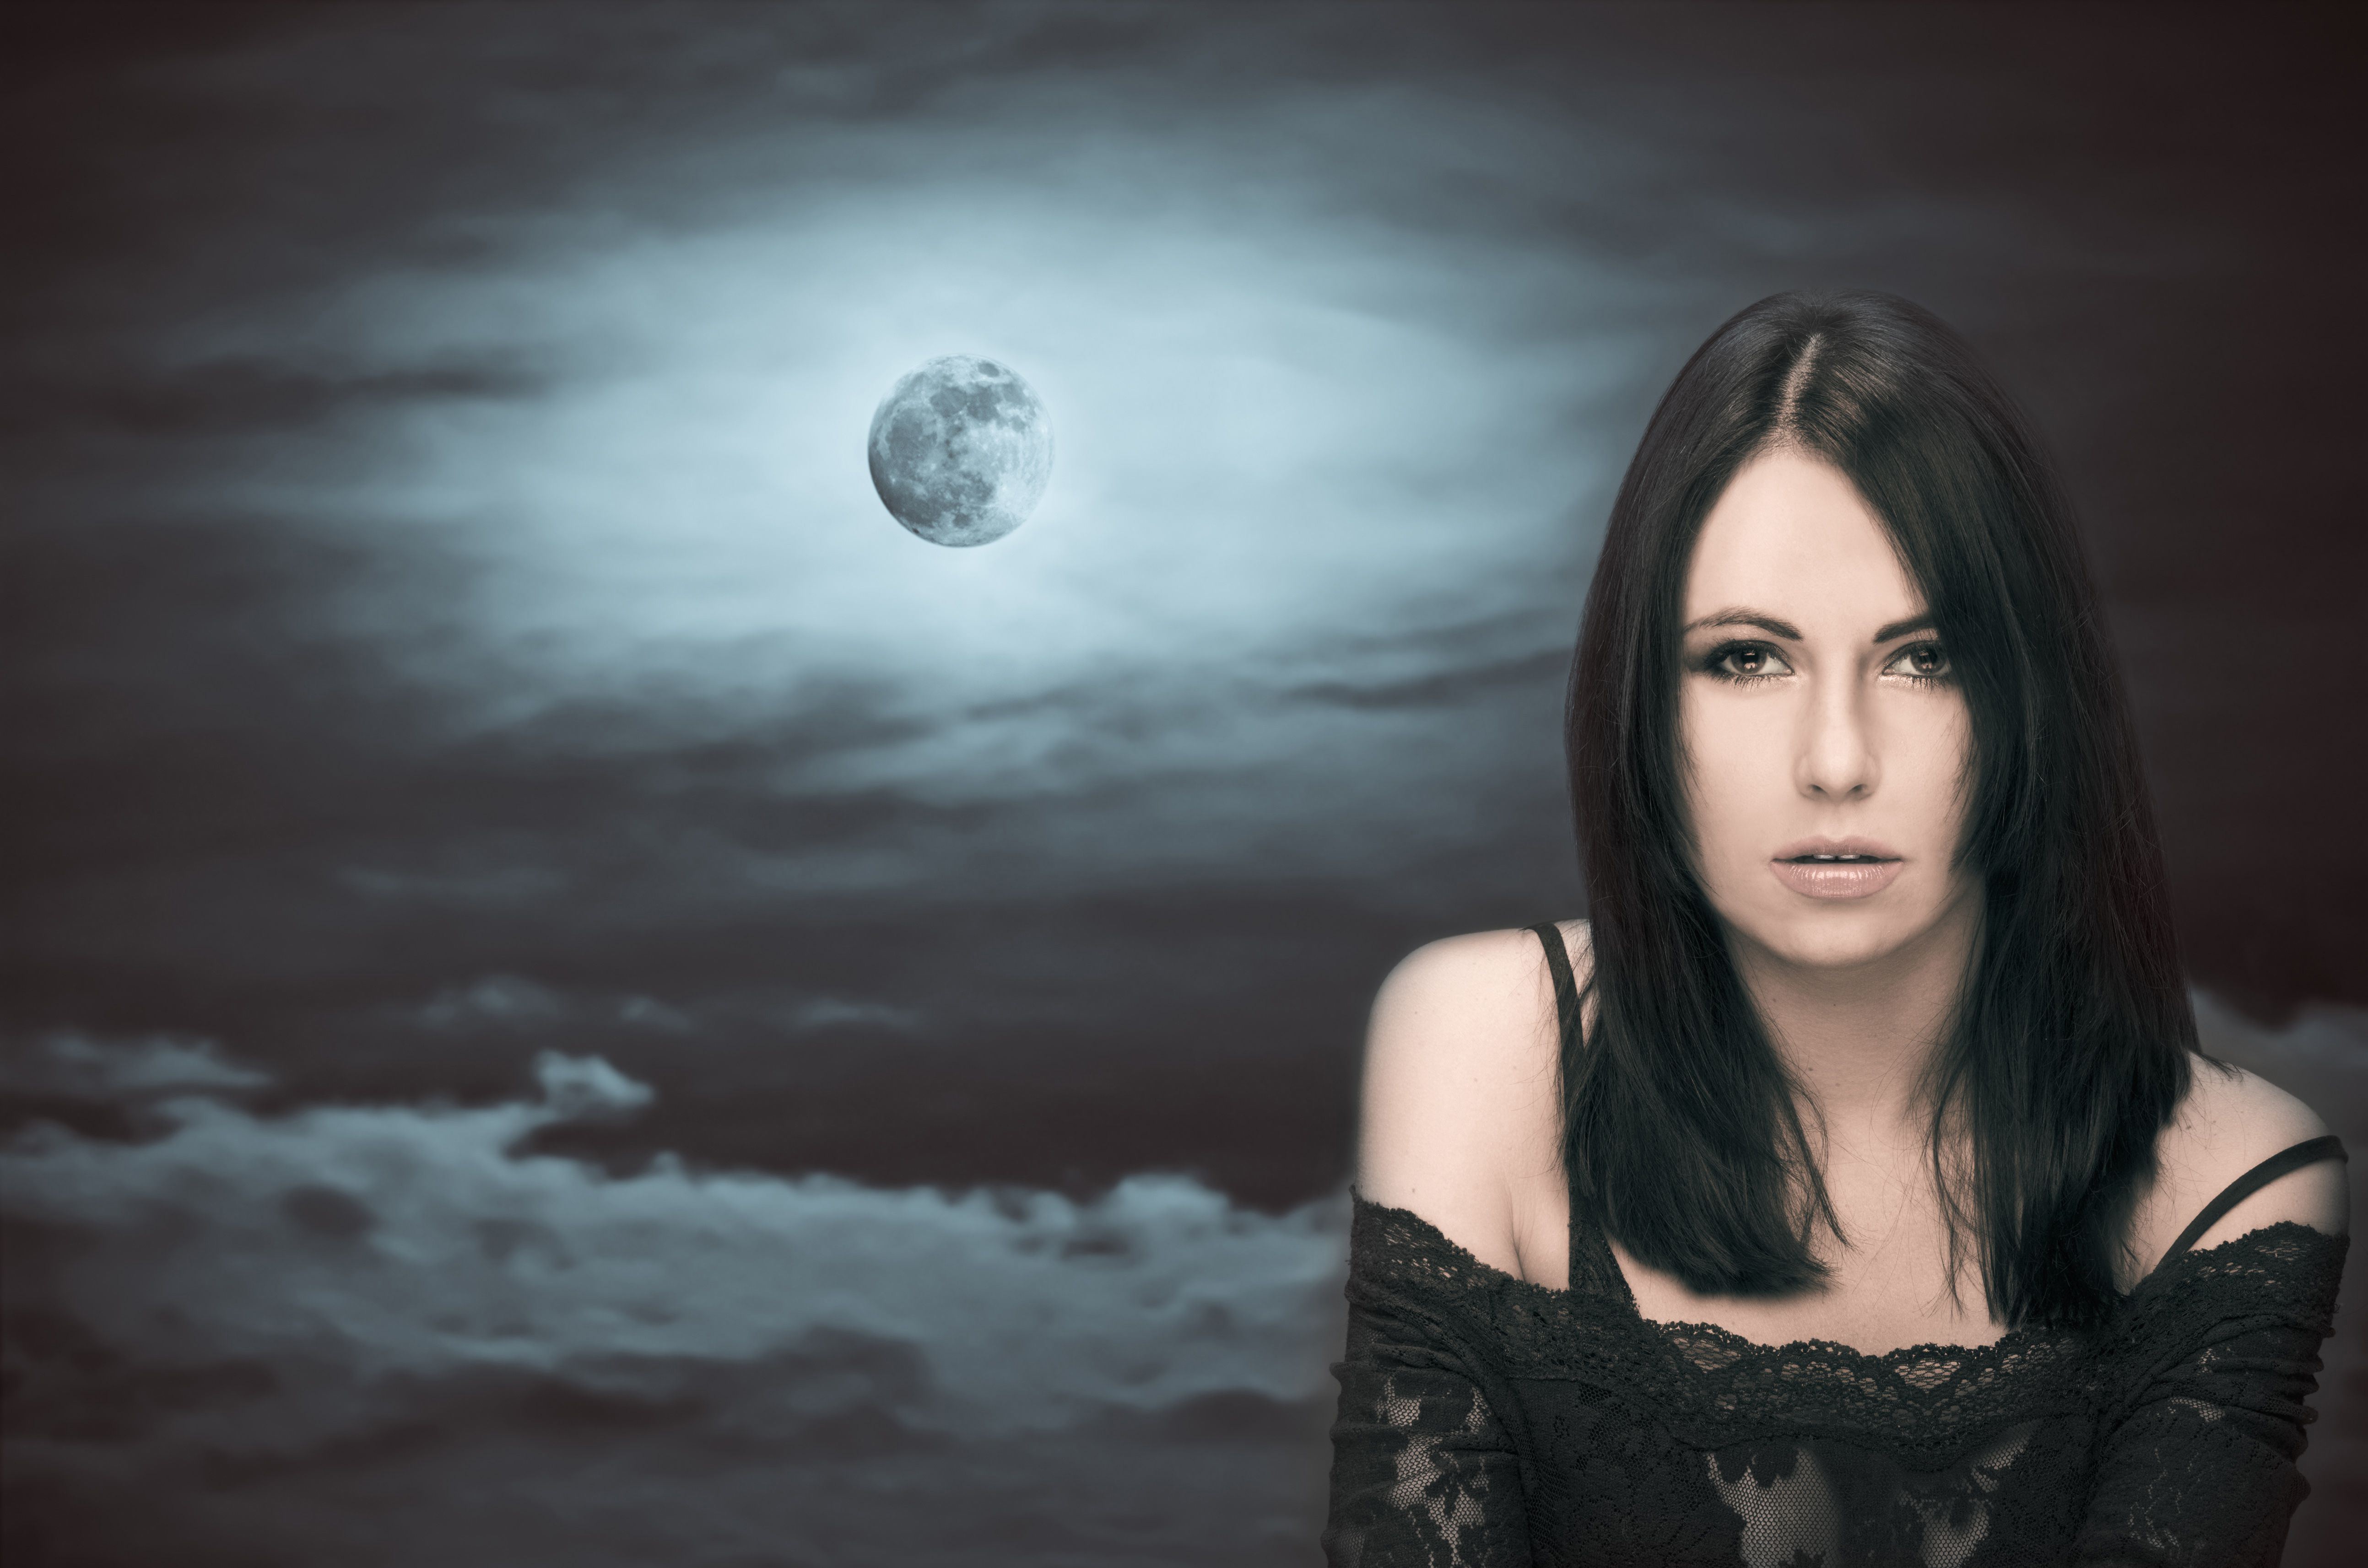 Woman in front of full moon